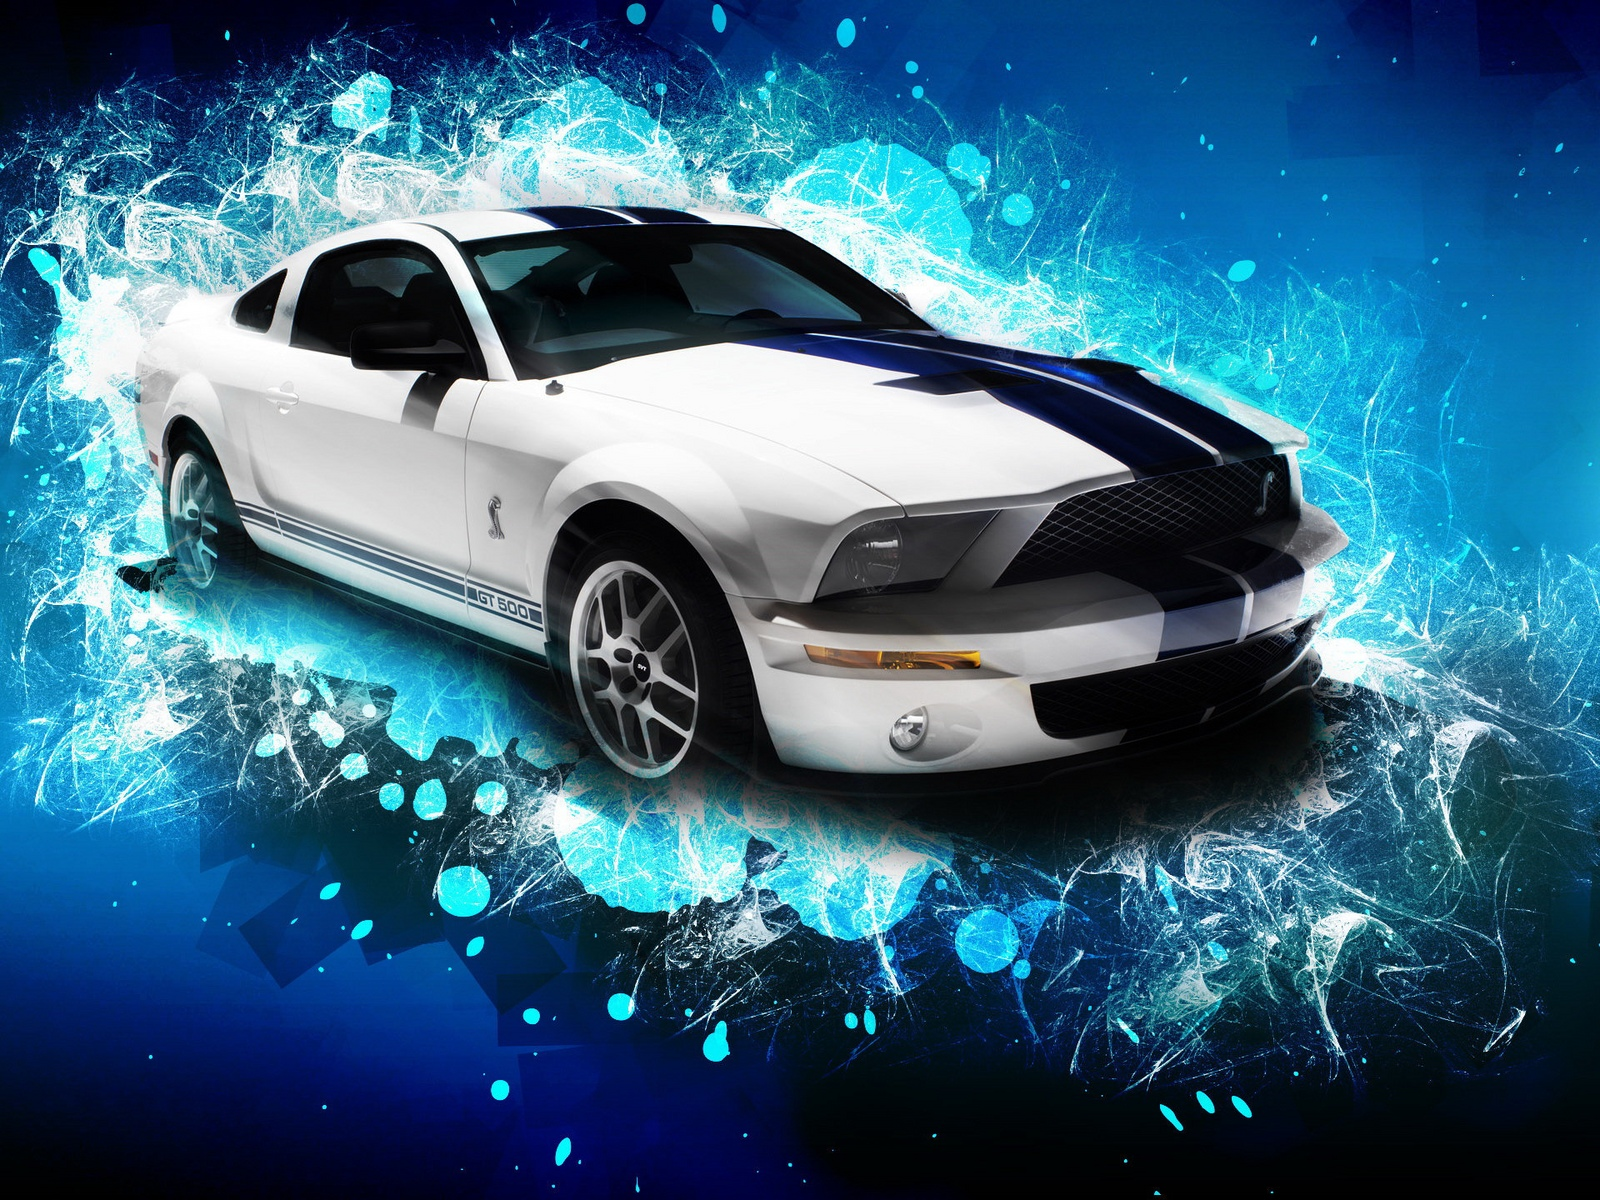 Cars Wallpapers,cars wallpapers,cars wallpapers download,cars wallpapers 2014,cars wallpapers hd 1080p,cars wallpapers for mobile,cars wallpapers in hd,cars wallpapers 2014 hd download,cars wallpapers for android,cars wallpapers hd download,cars wallpapers for windows 7